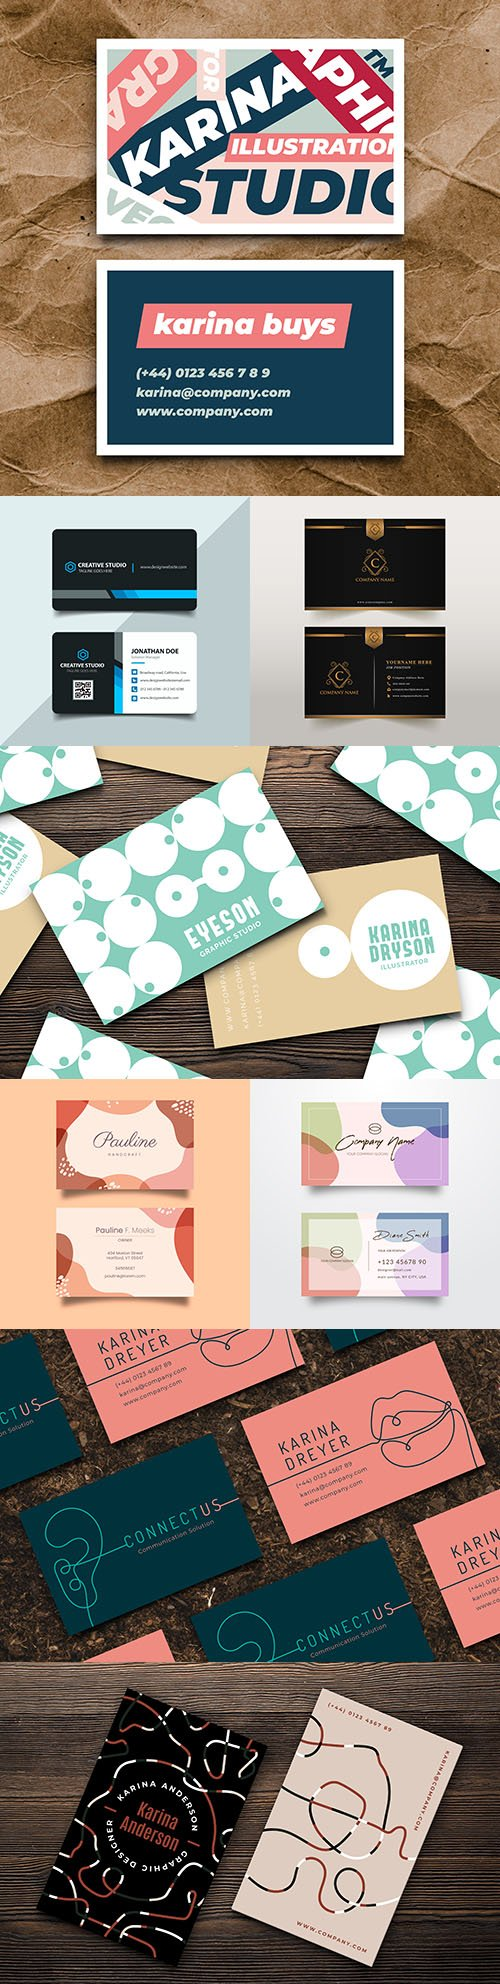 Business cards brand company design template 3